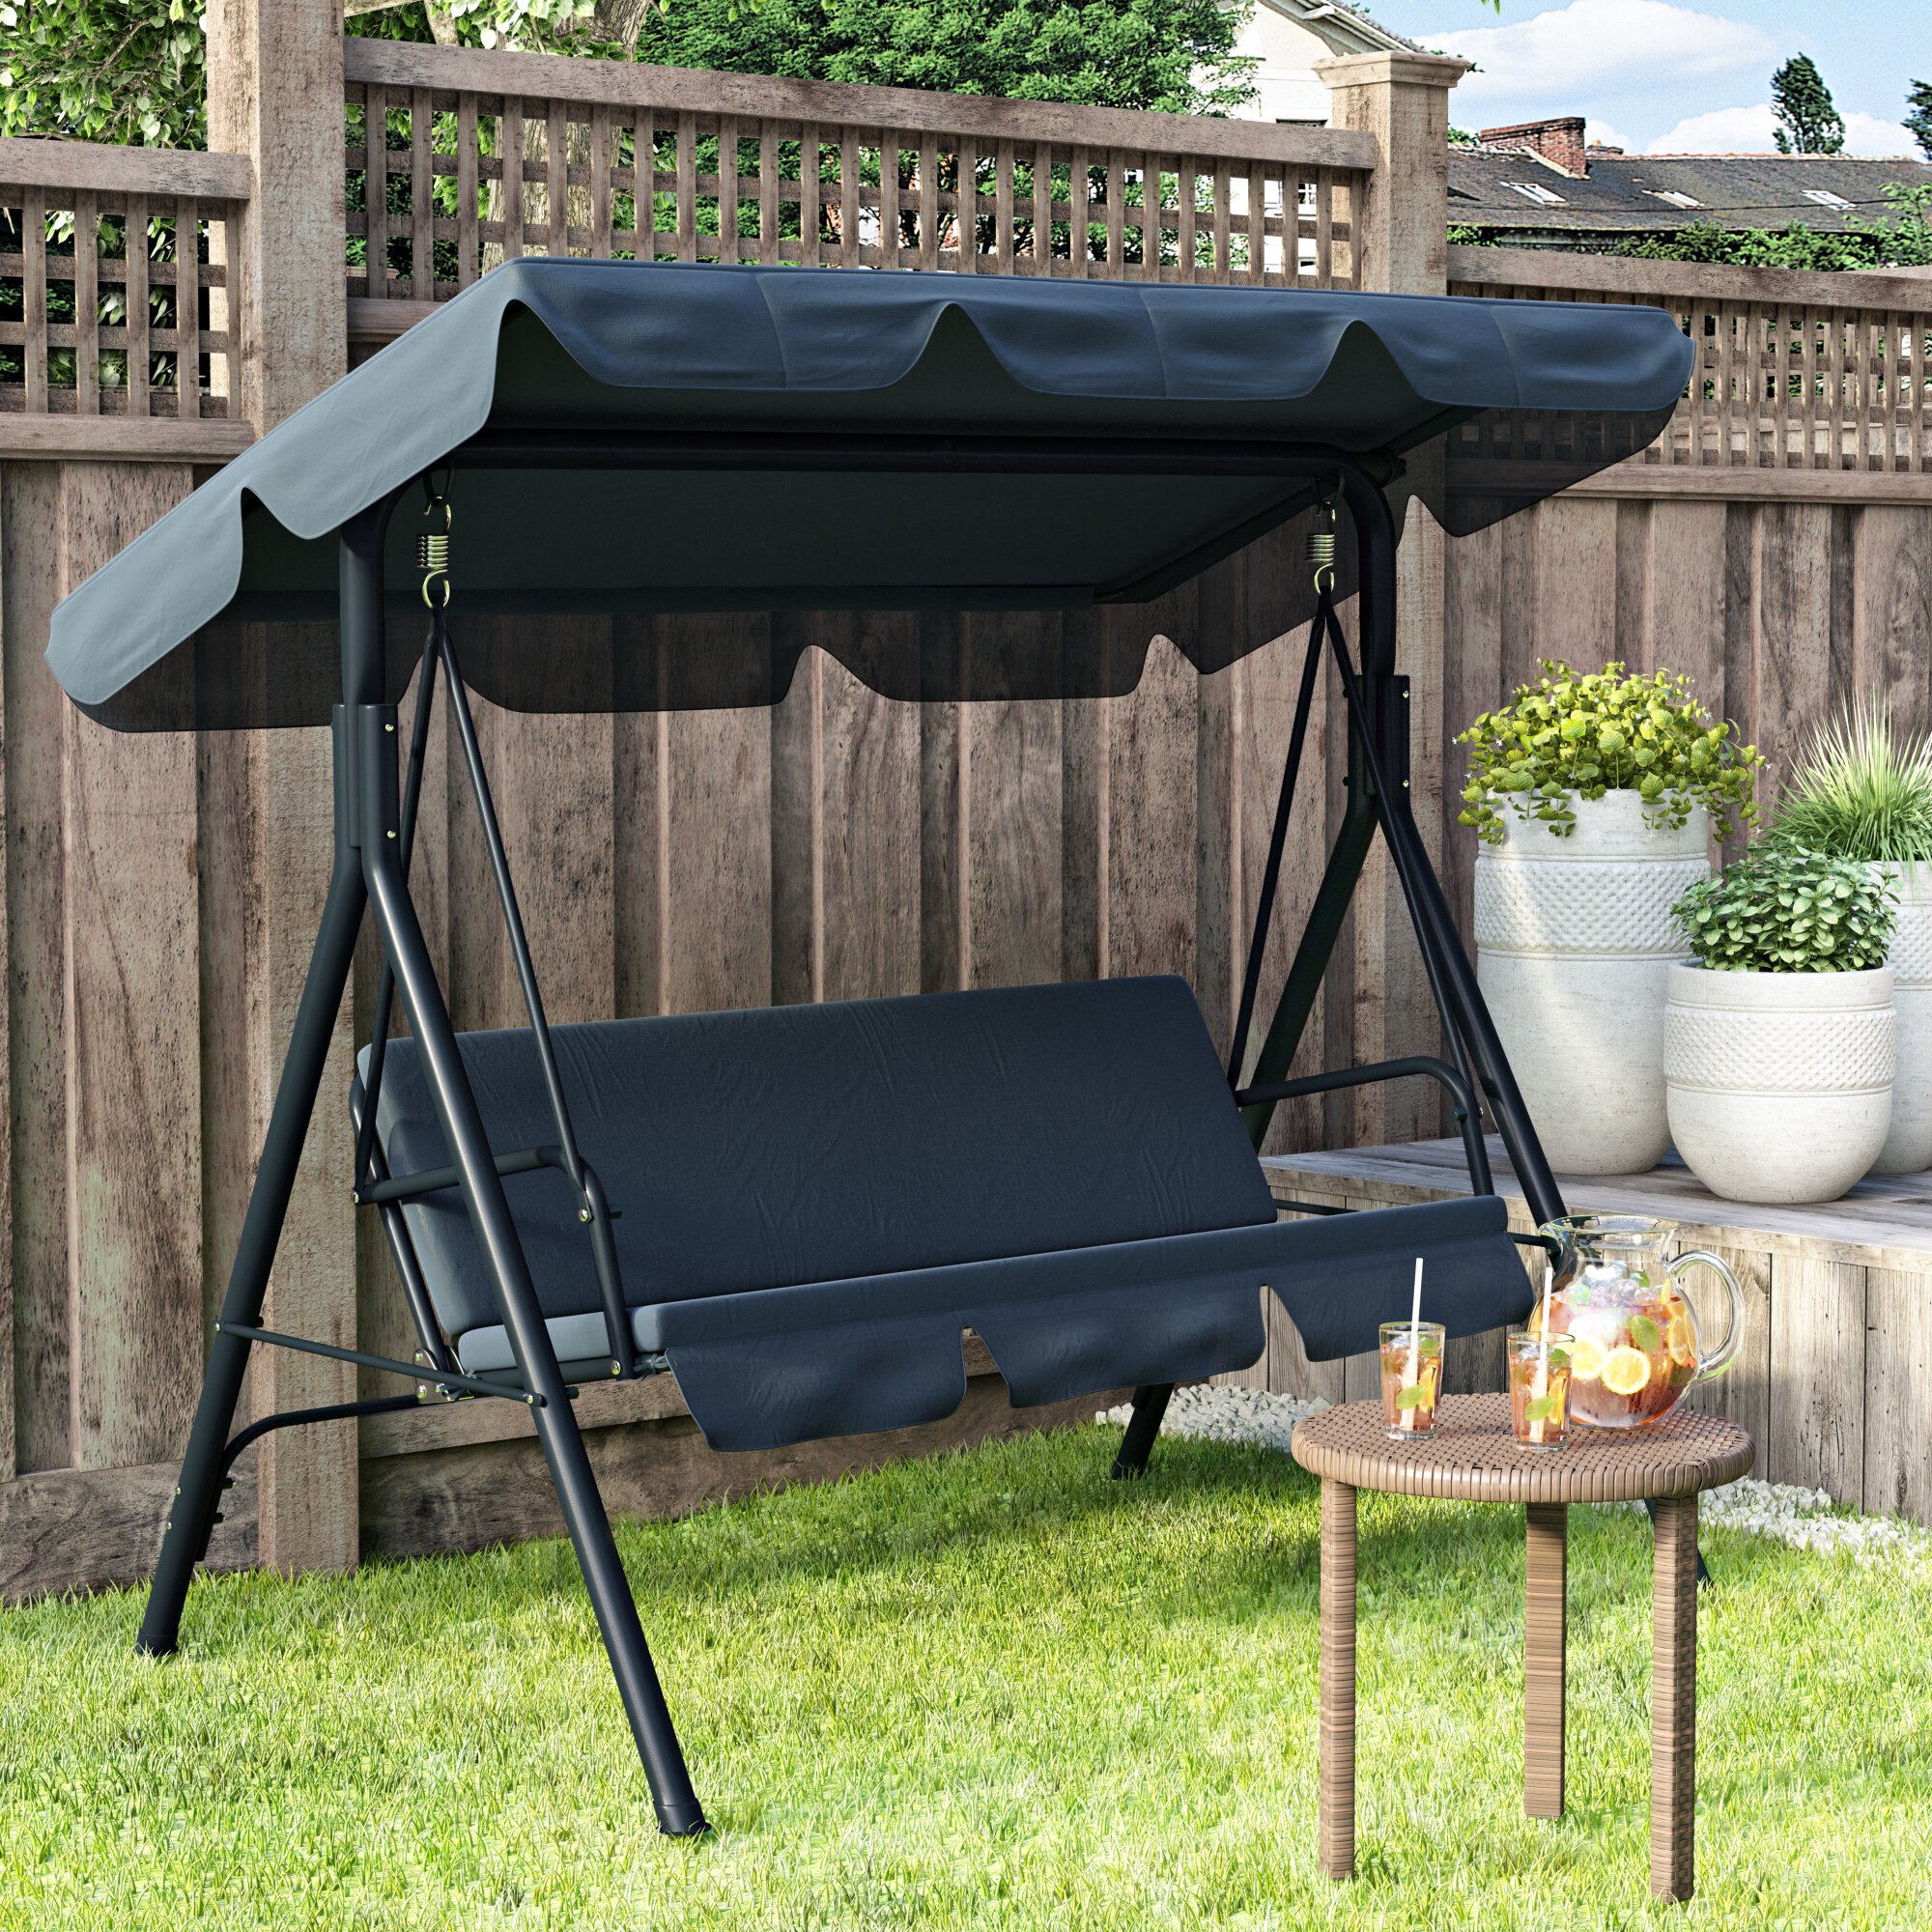 Corgy Outdoor Courtyard Swing Canopy Ceiling Cover Sun Shelters